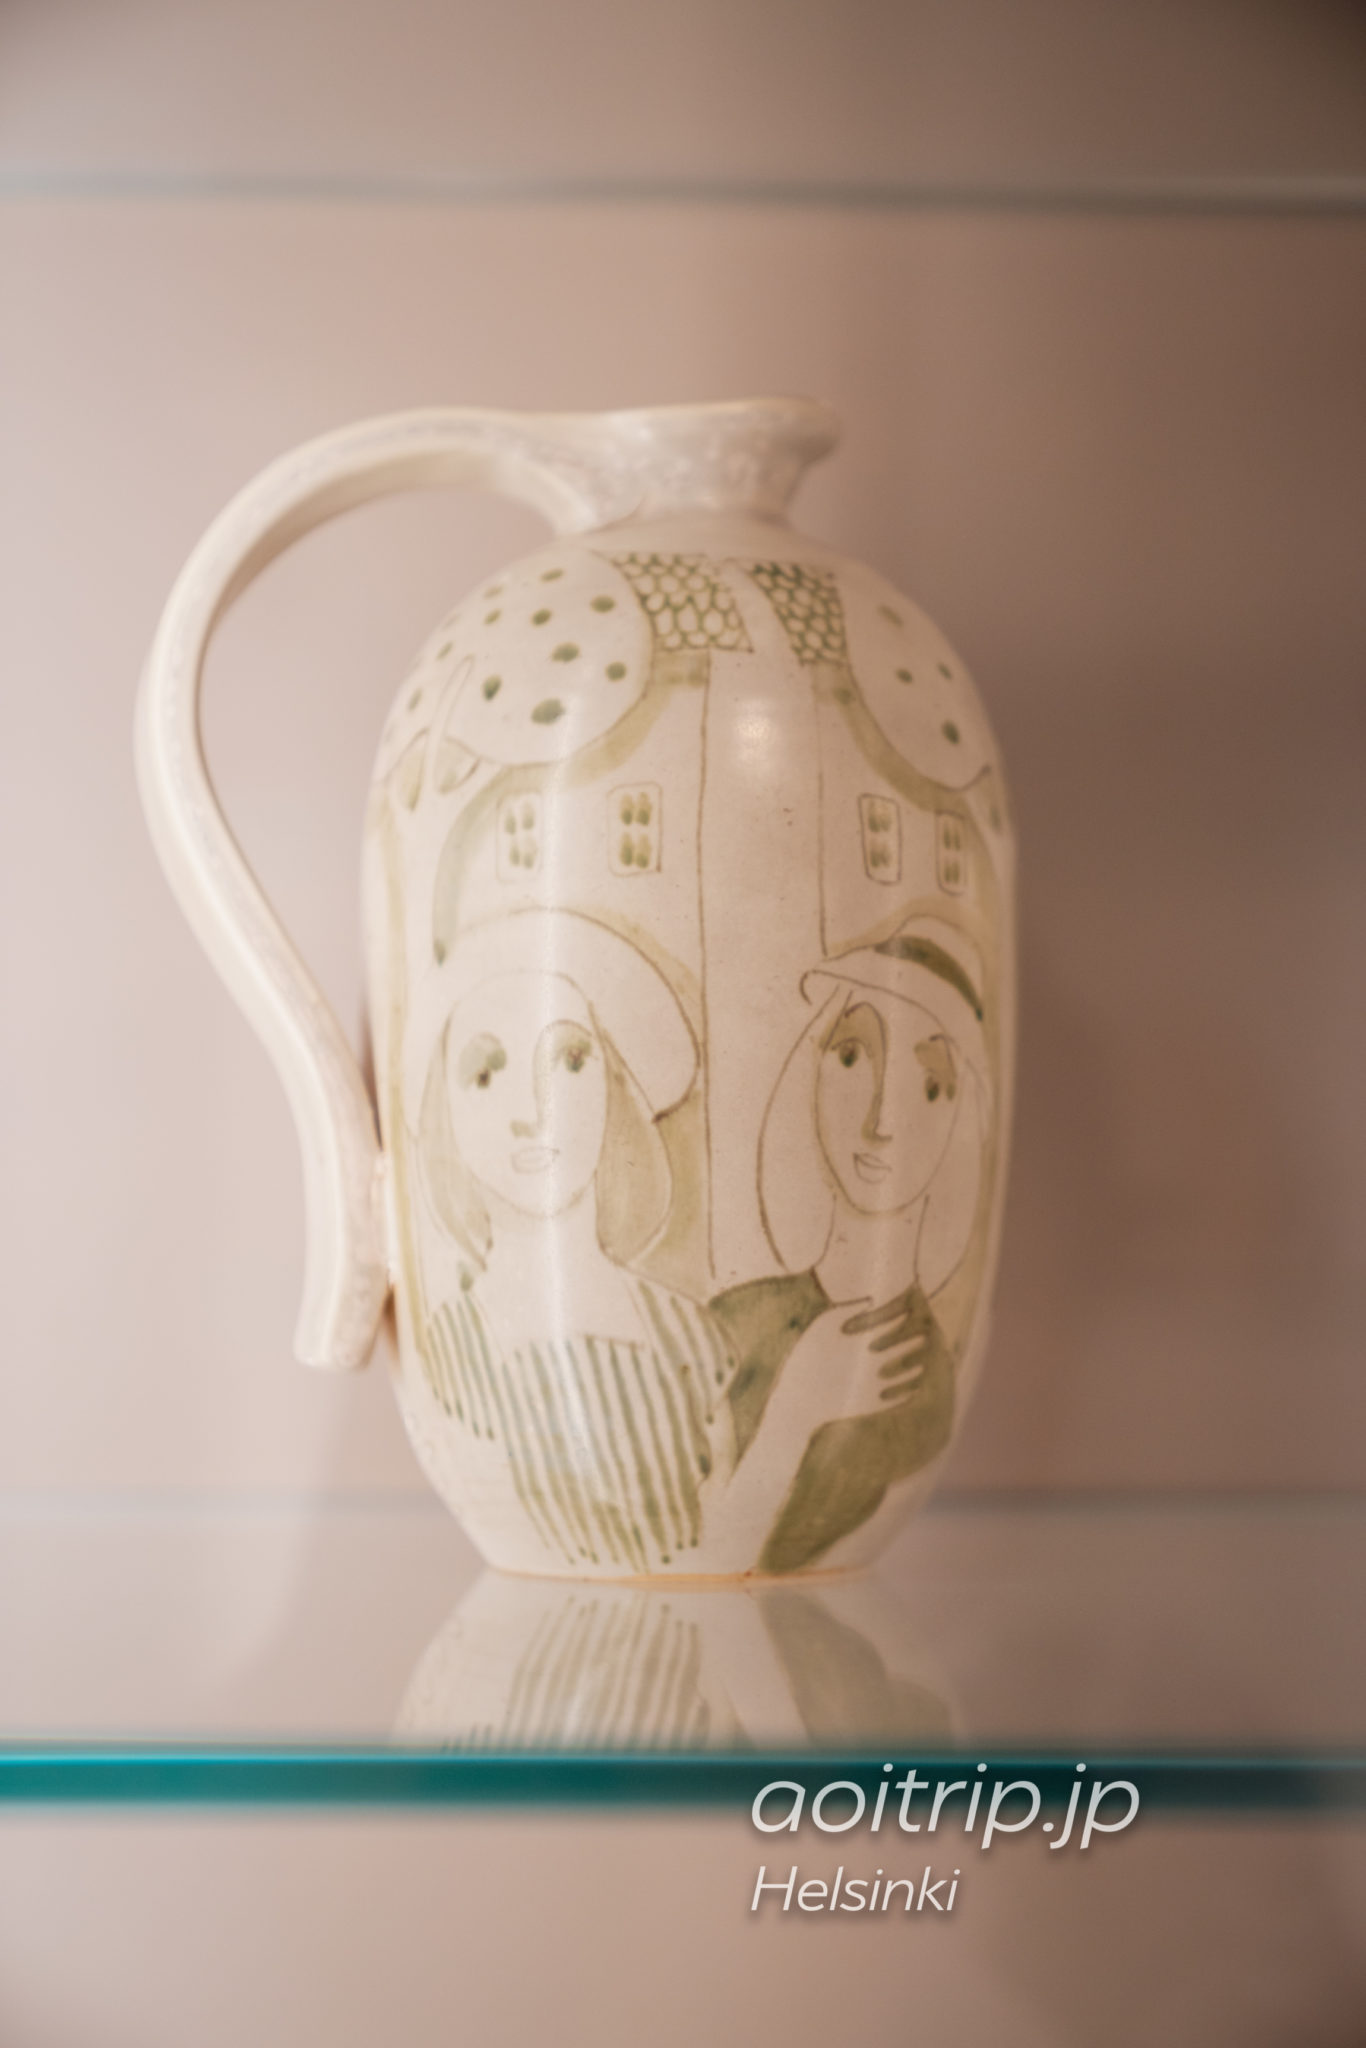 『Decorative Pitcher』Hilkka Säynäjärvi